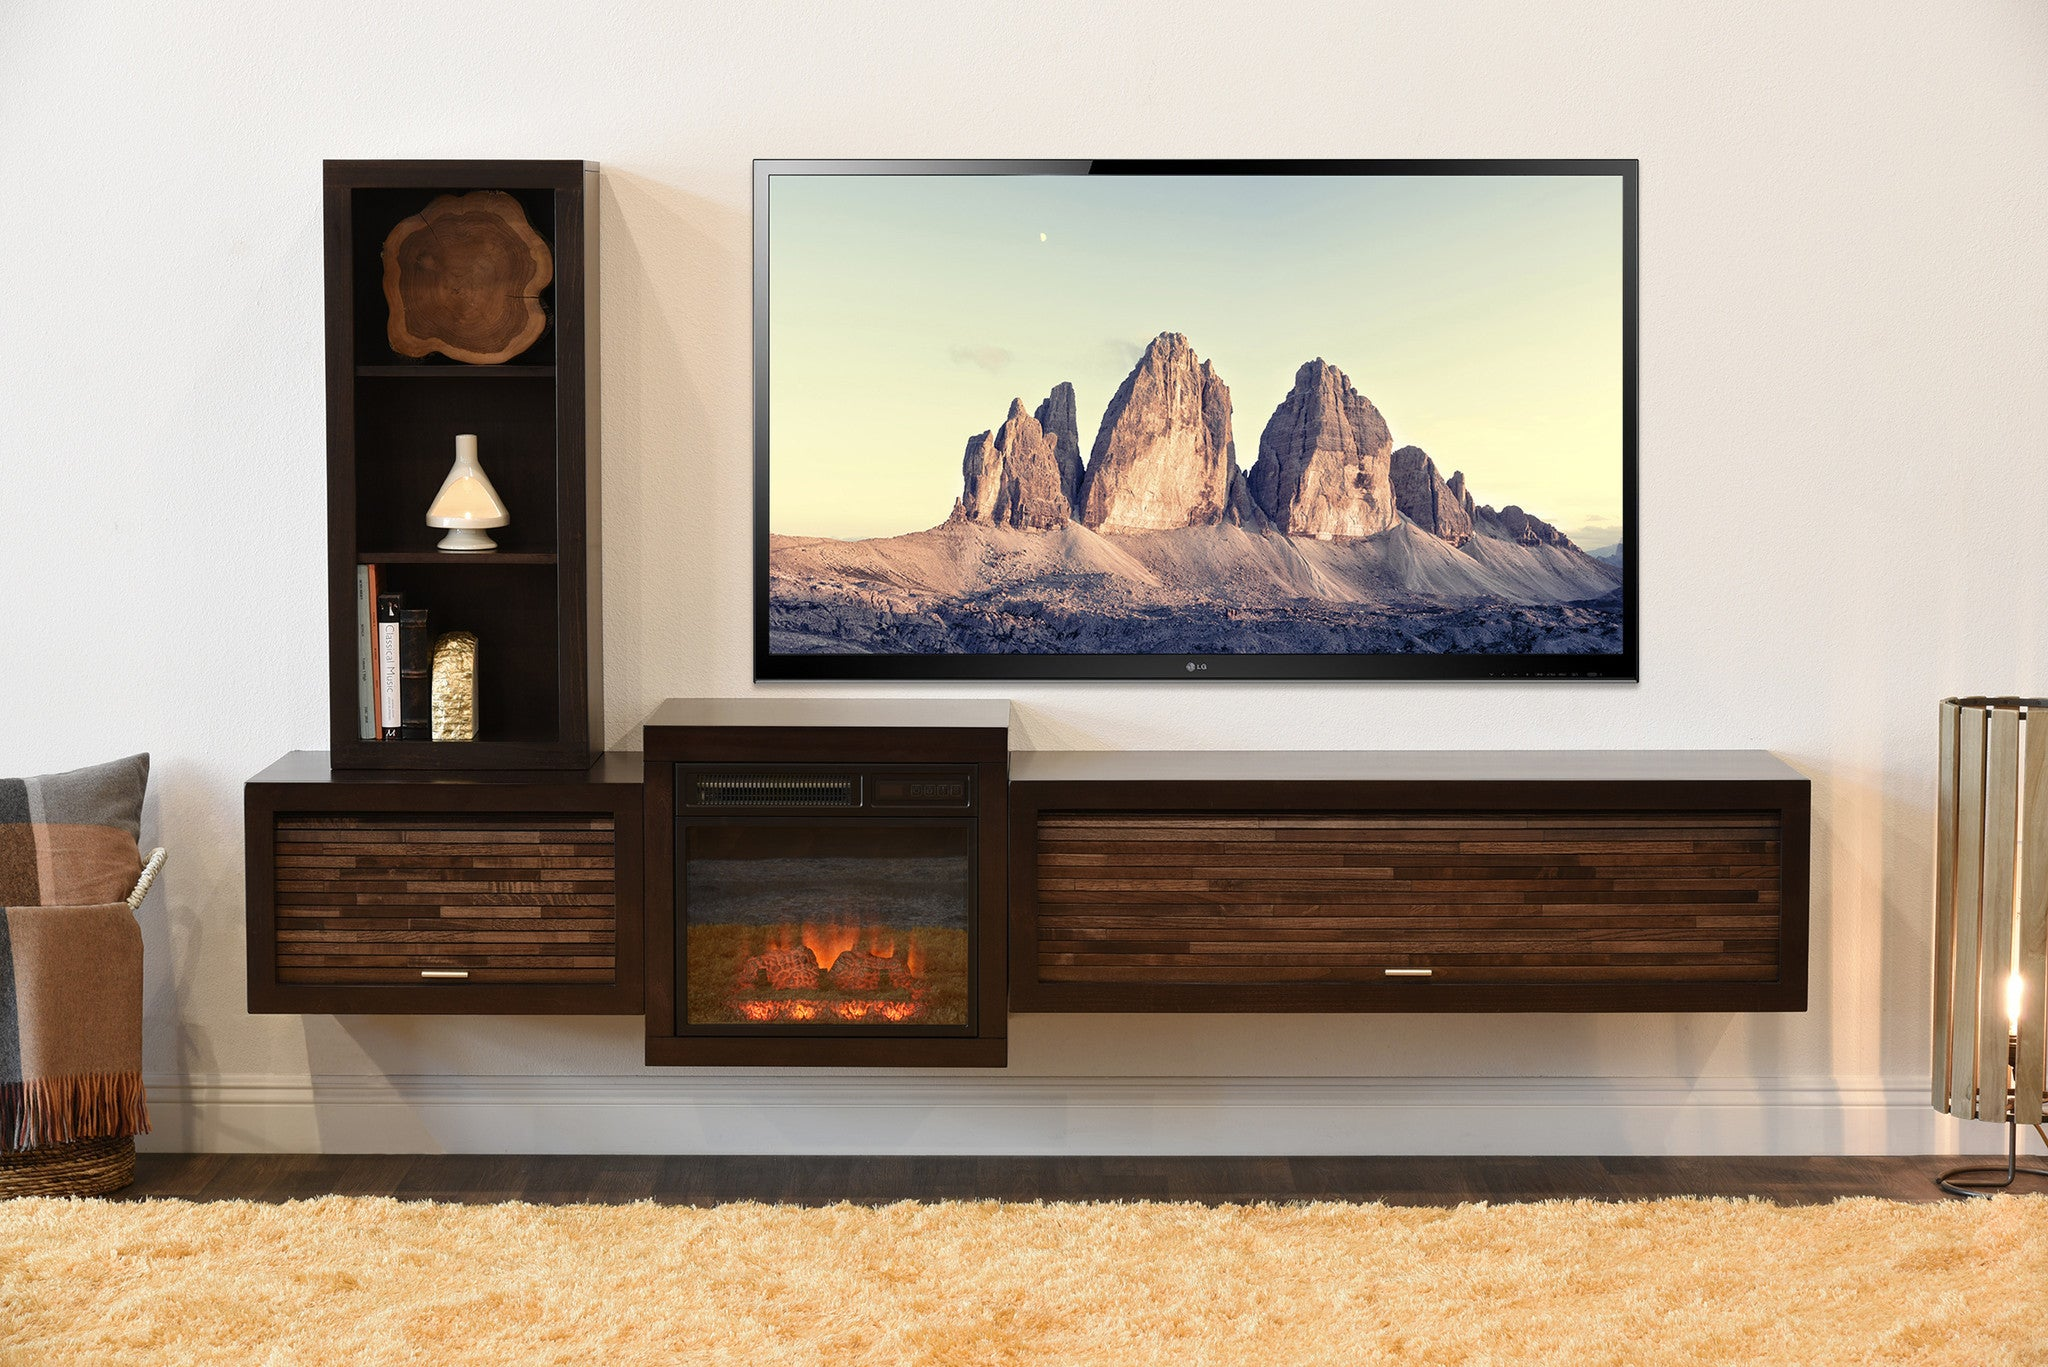 stand mocha floating mounted woodwaves fireplace eco shelves wall with tv entertainment of geo